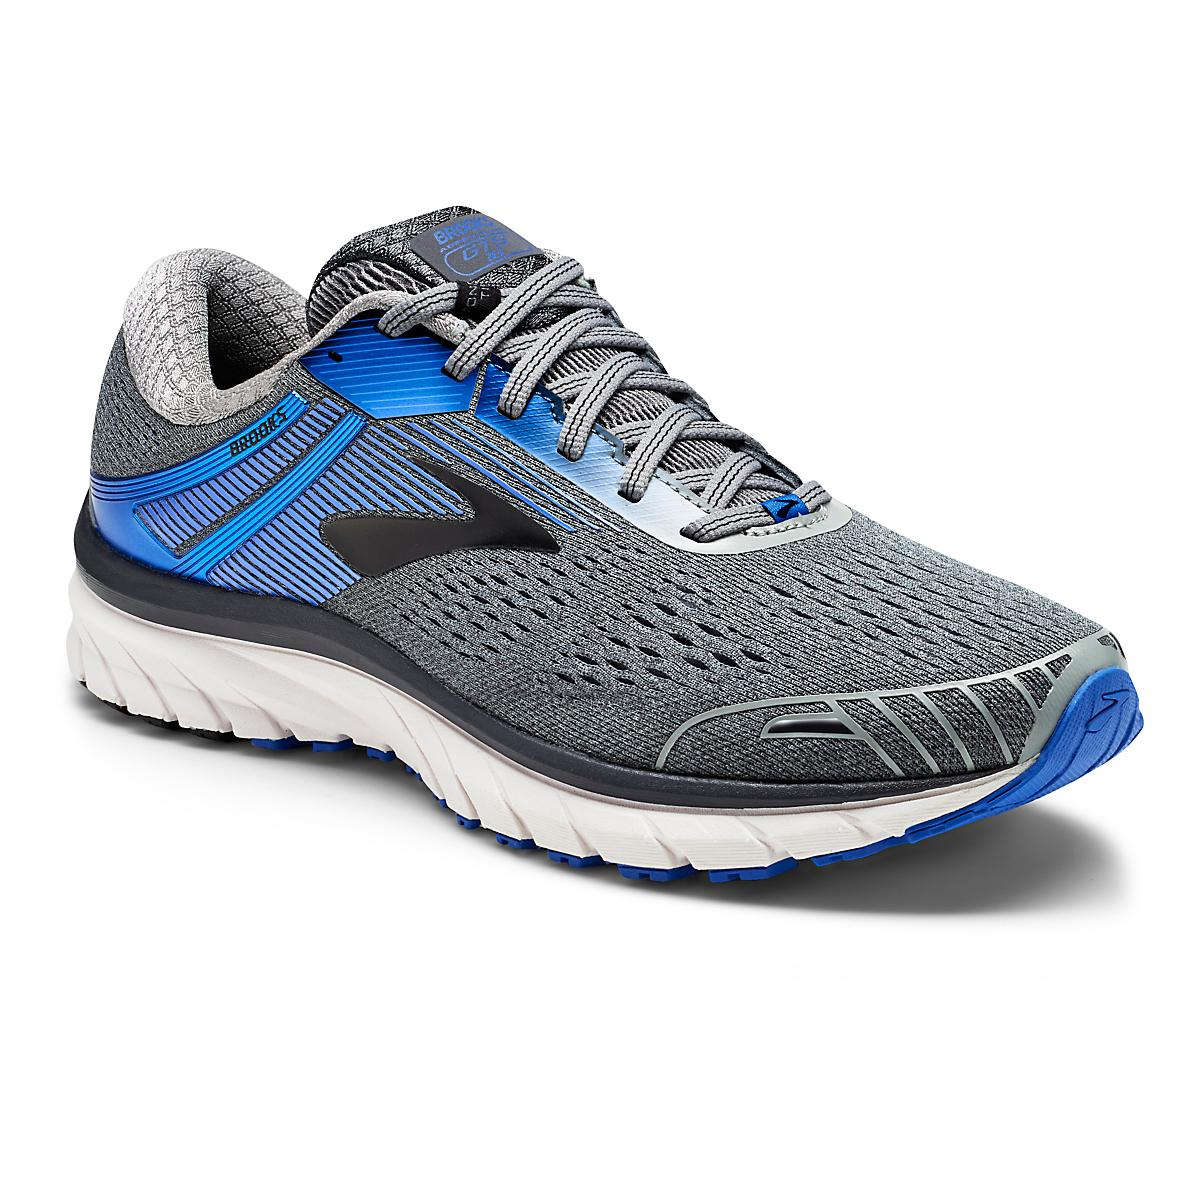 9baad6bd96f37 Men s Brooks Adrenaline GTS 18 Running Shoes